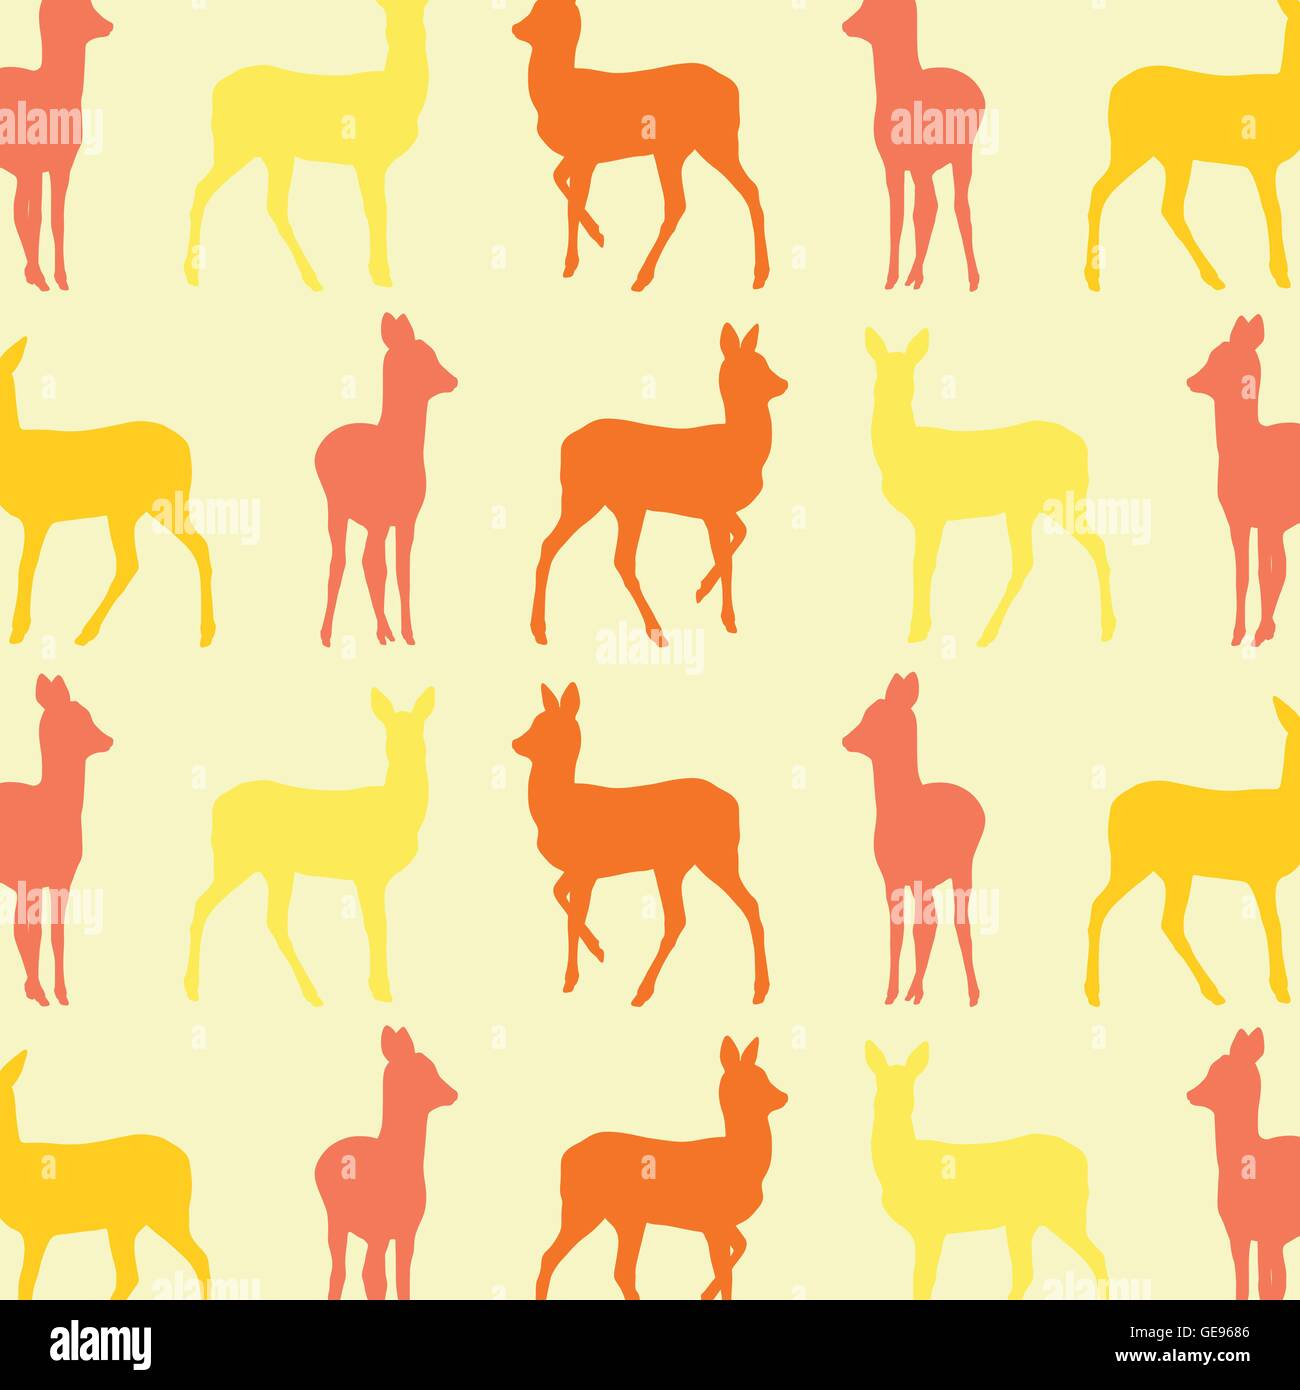 Doe Deer Animal Seamless Pattern Colorful Vector Wallpaper For Kid Background Concept